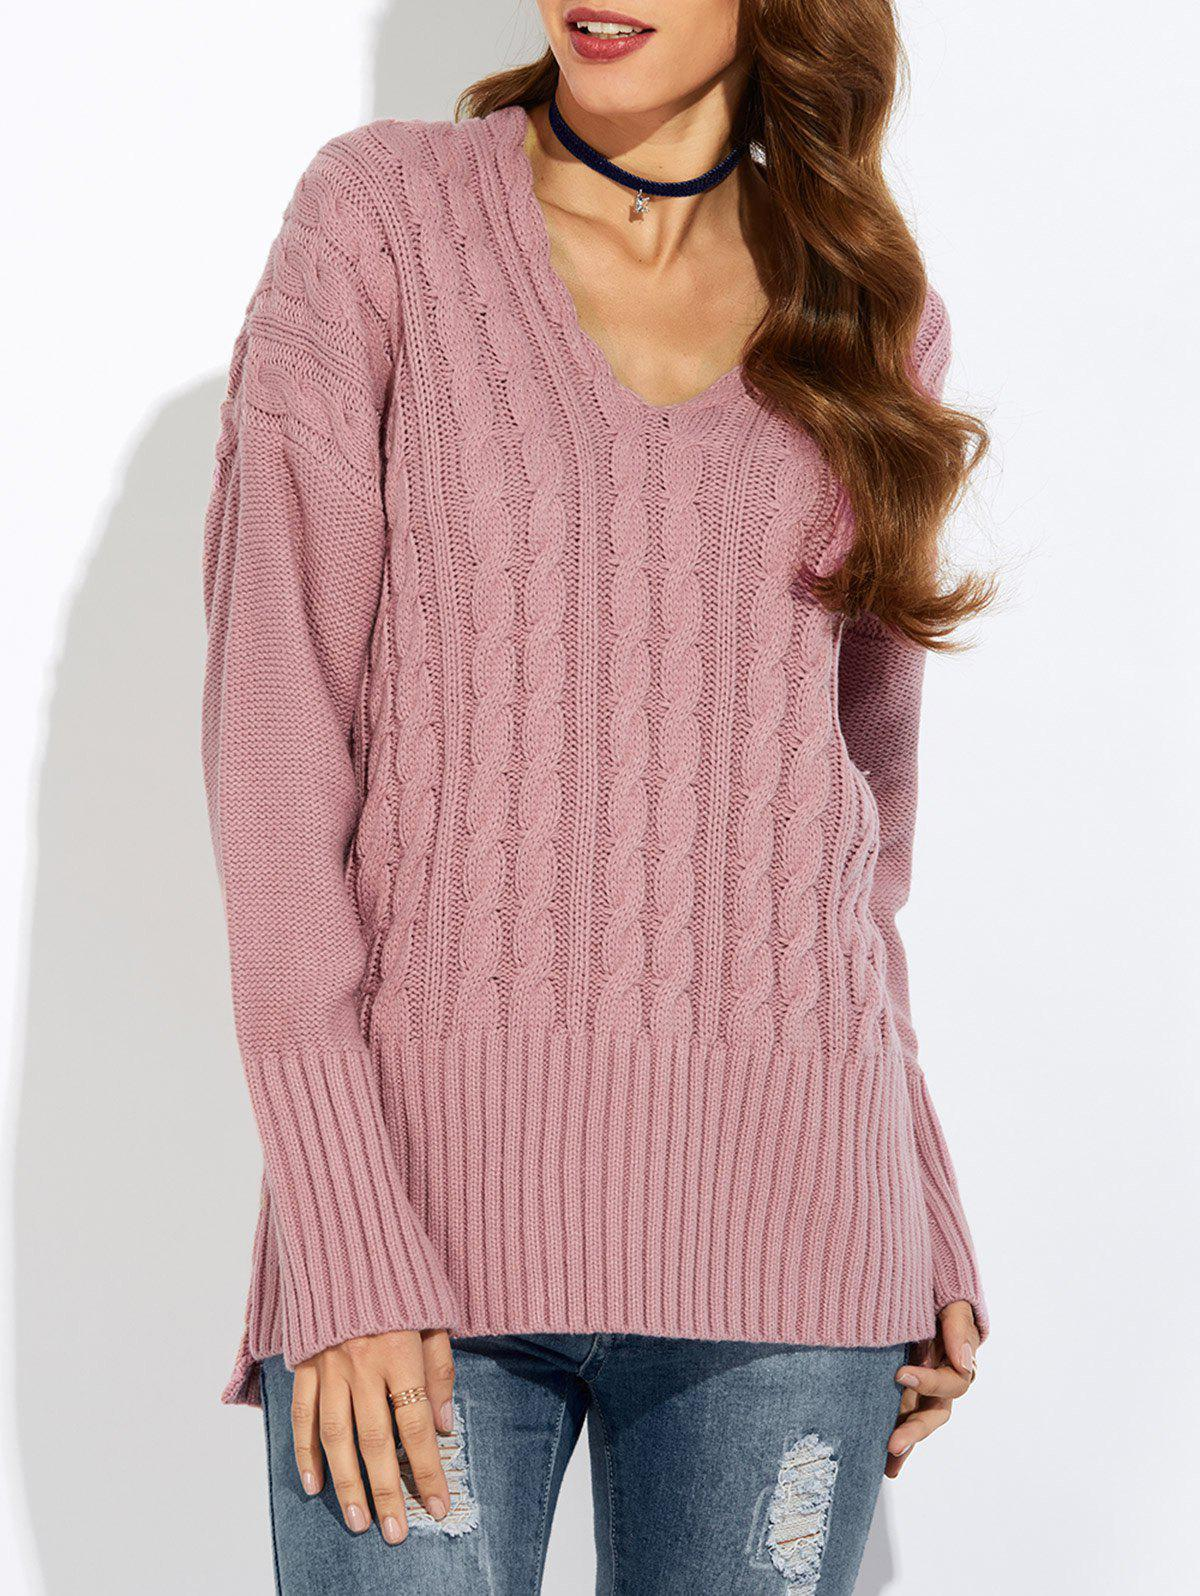 V Neck Drop Shoulder Pullover Cable Knit Sweater цена